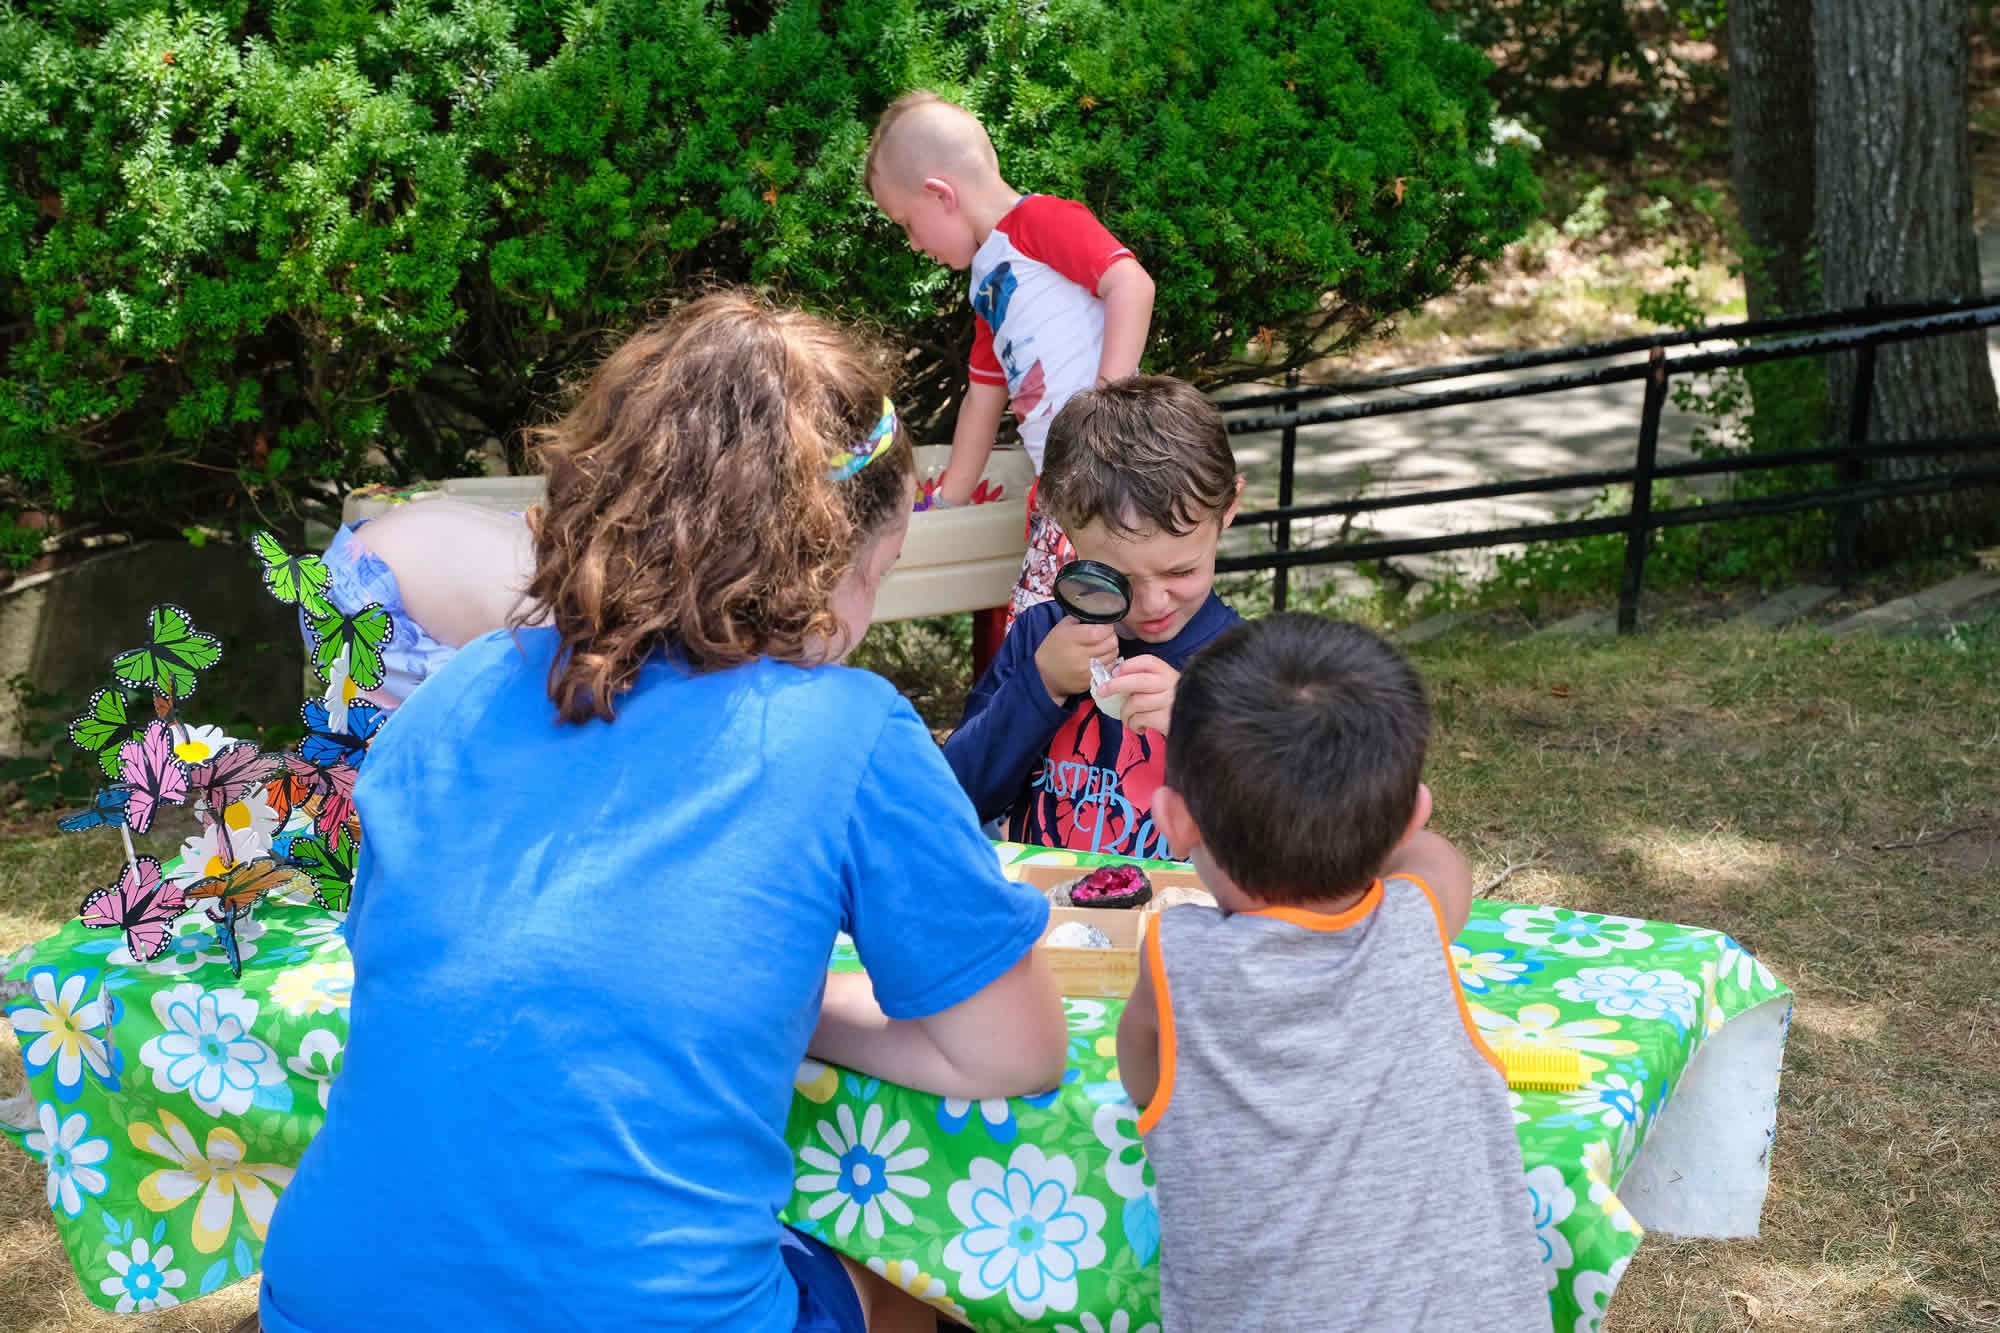 Family Fun Day at Nobles Day Camp